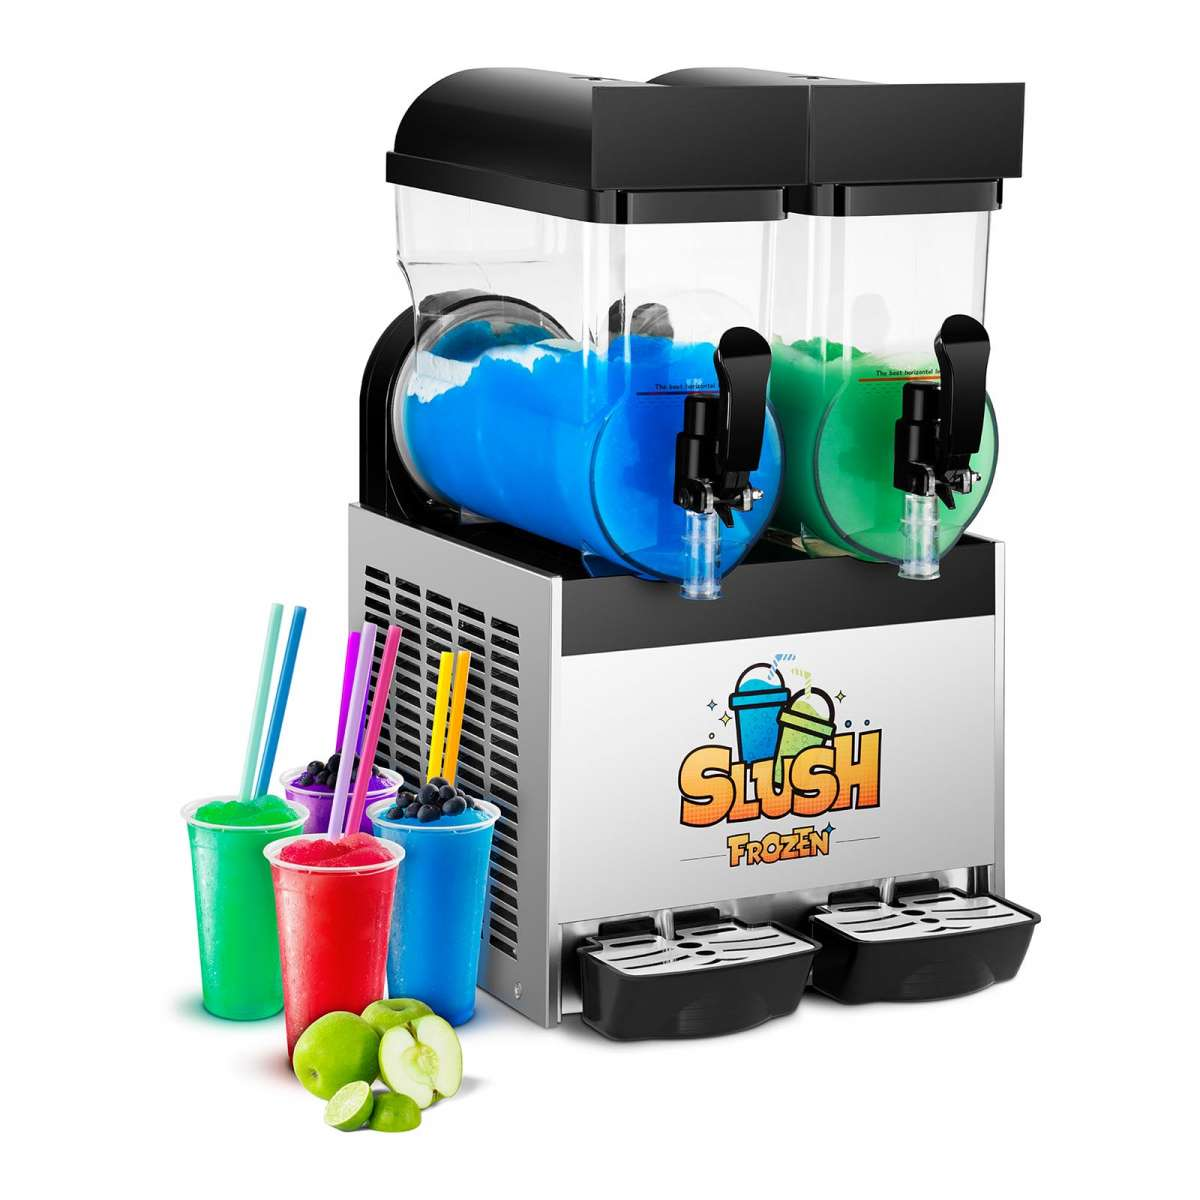 Professionell Slush Ice herstellen | Kooperation